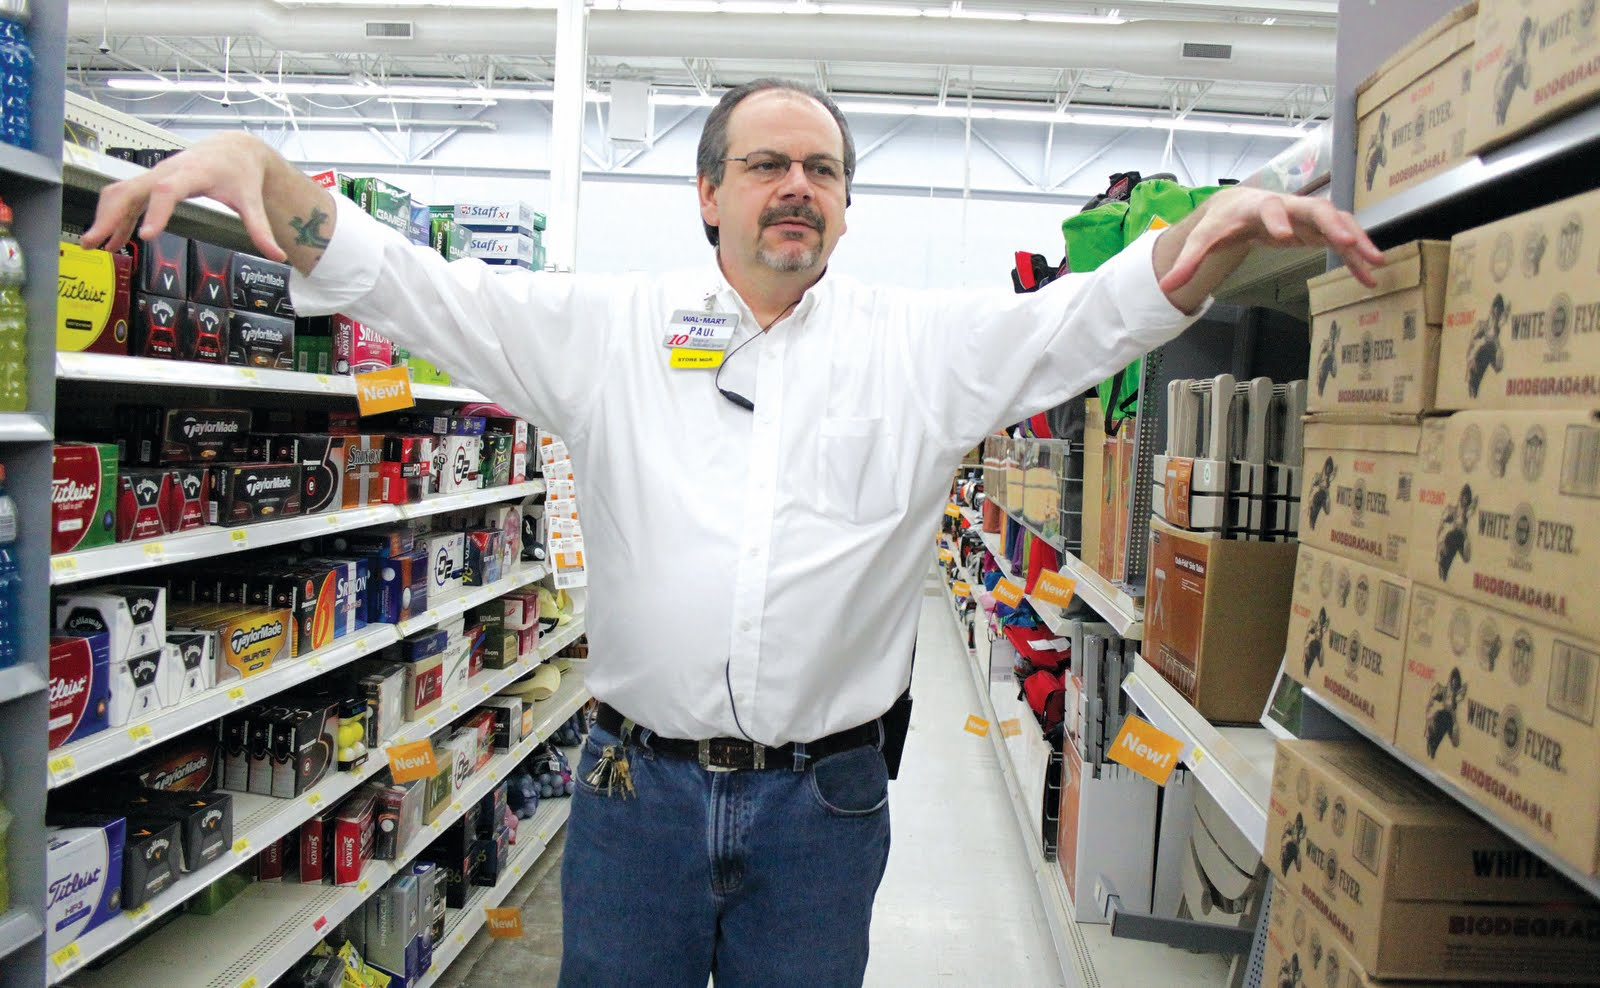 walmart s failure Heading to walmart with a plan to only pick up one item is seriously setting yourself up for failure the massive retailer is home to everything shopper's need, so it.